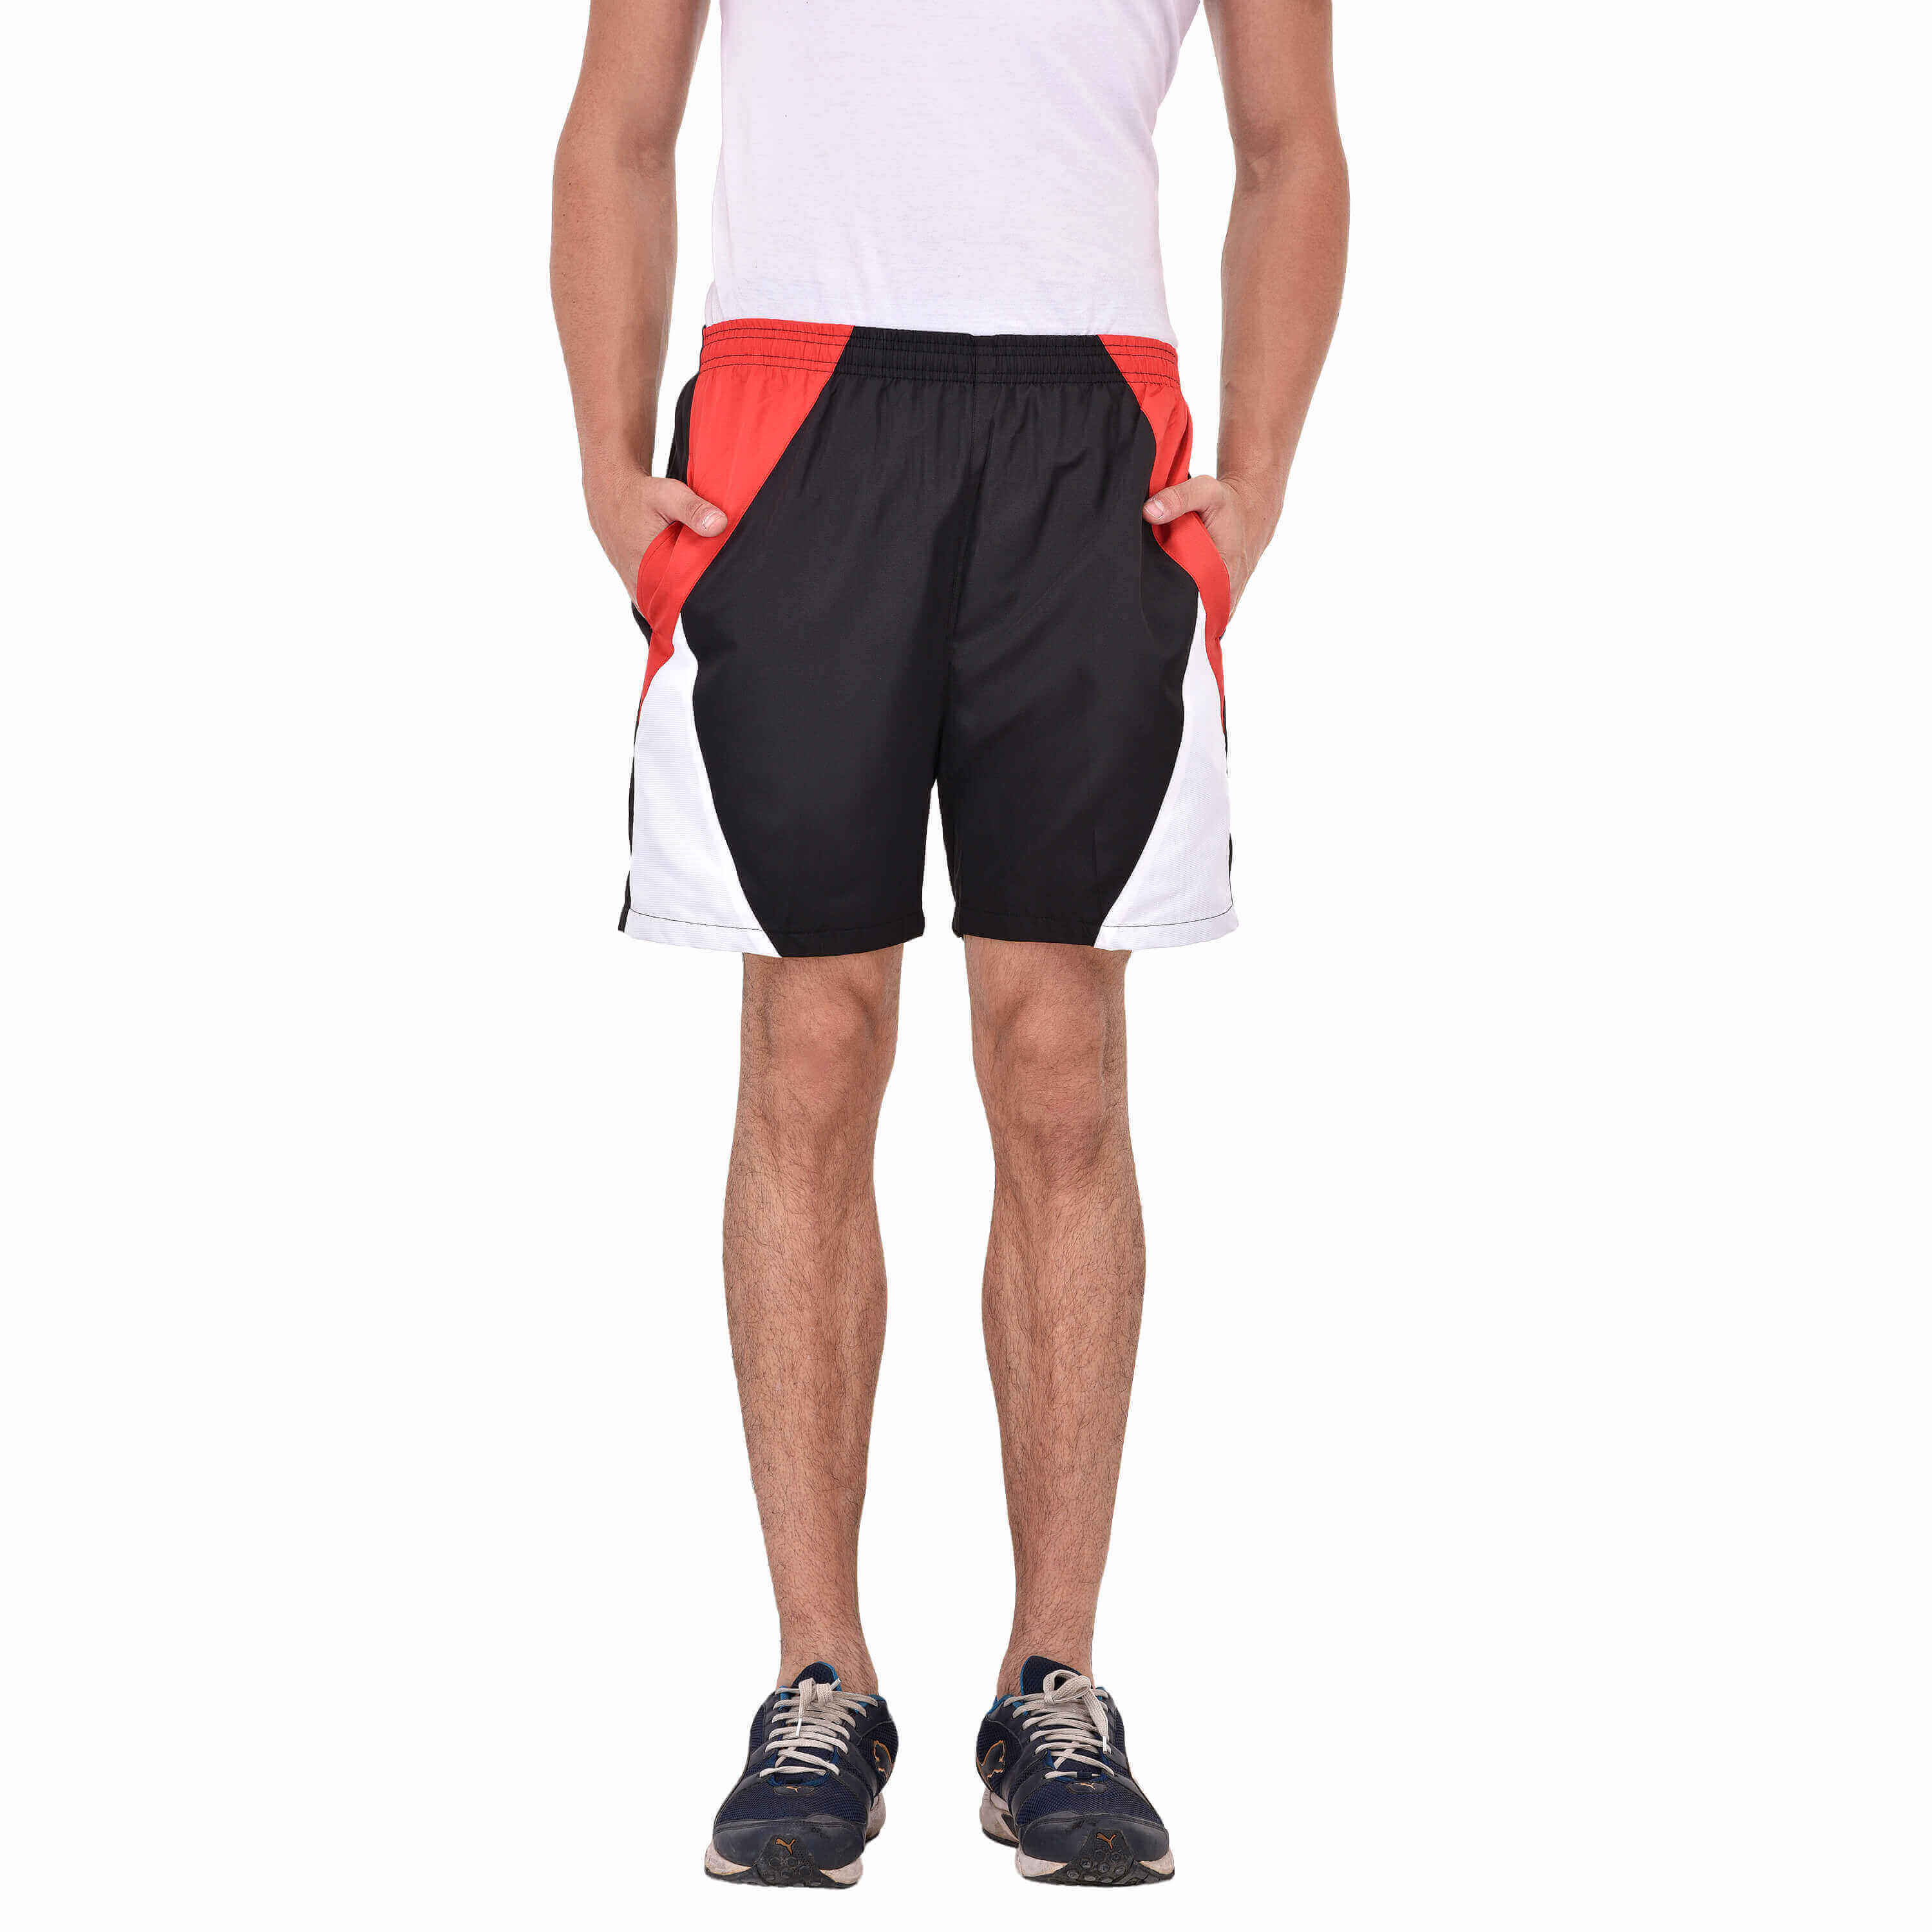 Soccer Shorts Manufacturers in Nanded